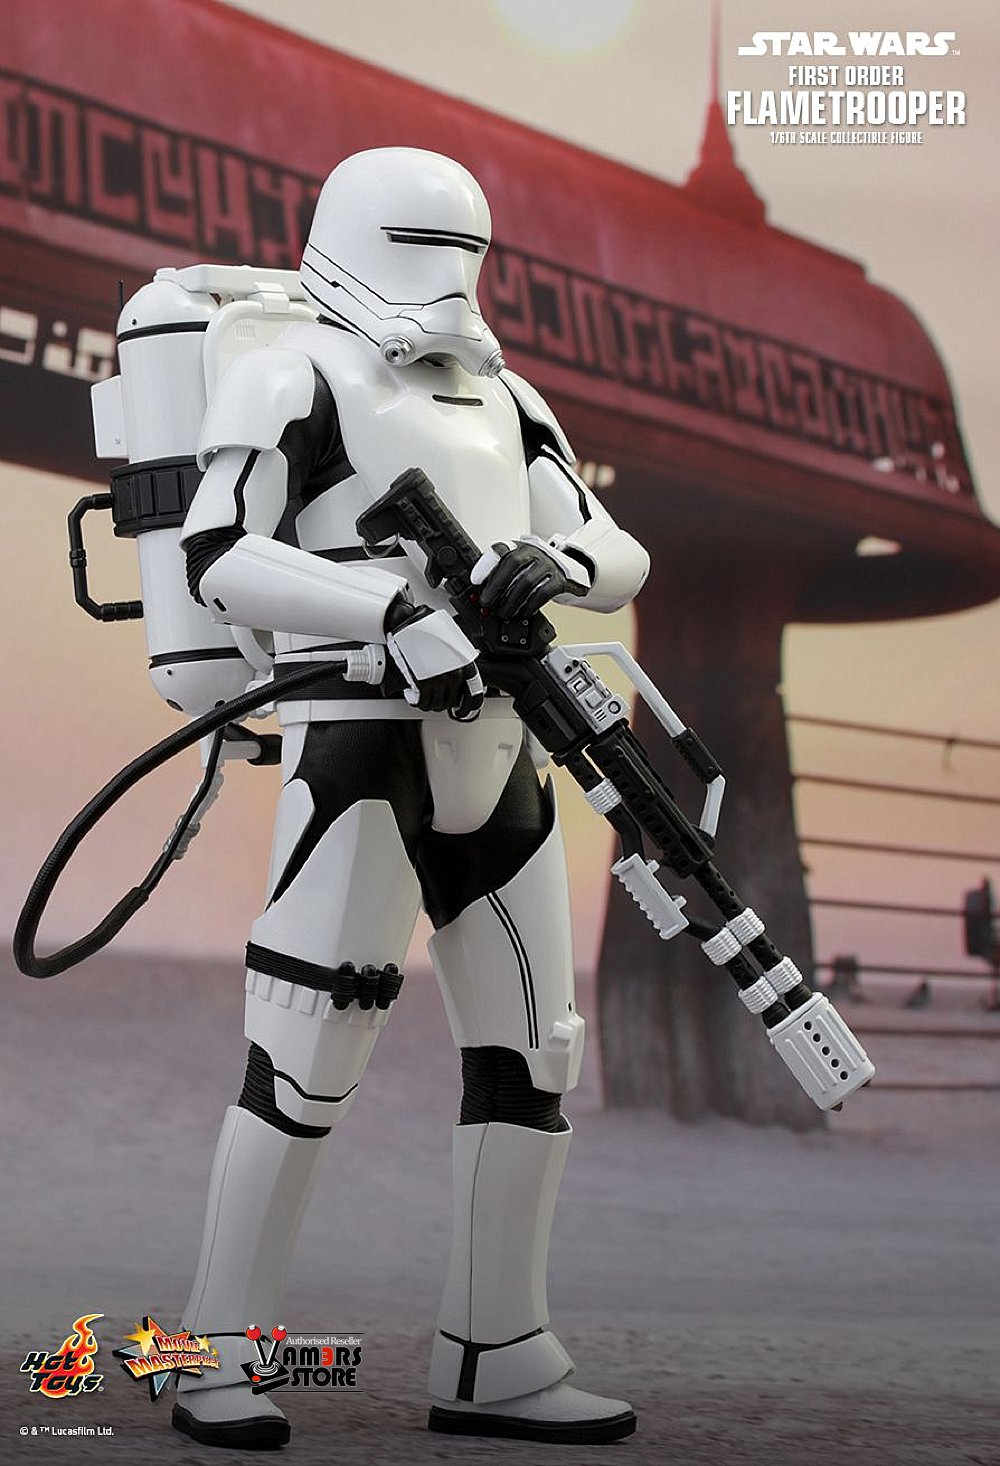 hot toys star wars first order flametrooper vamers store. Black Bedroom Furniture Sets. Home Design Ideas